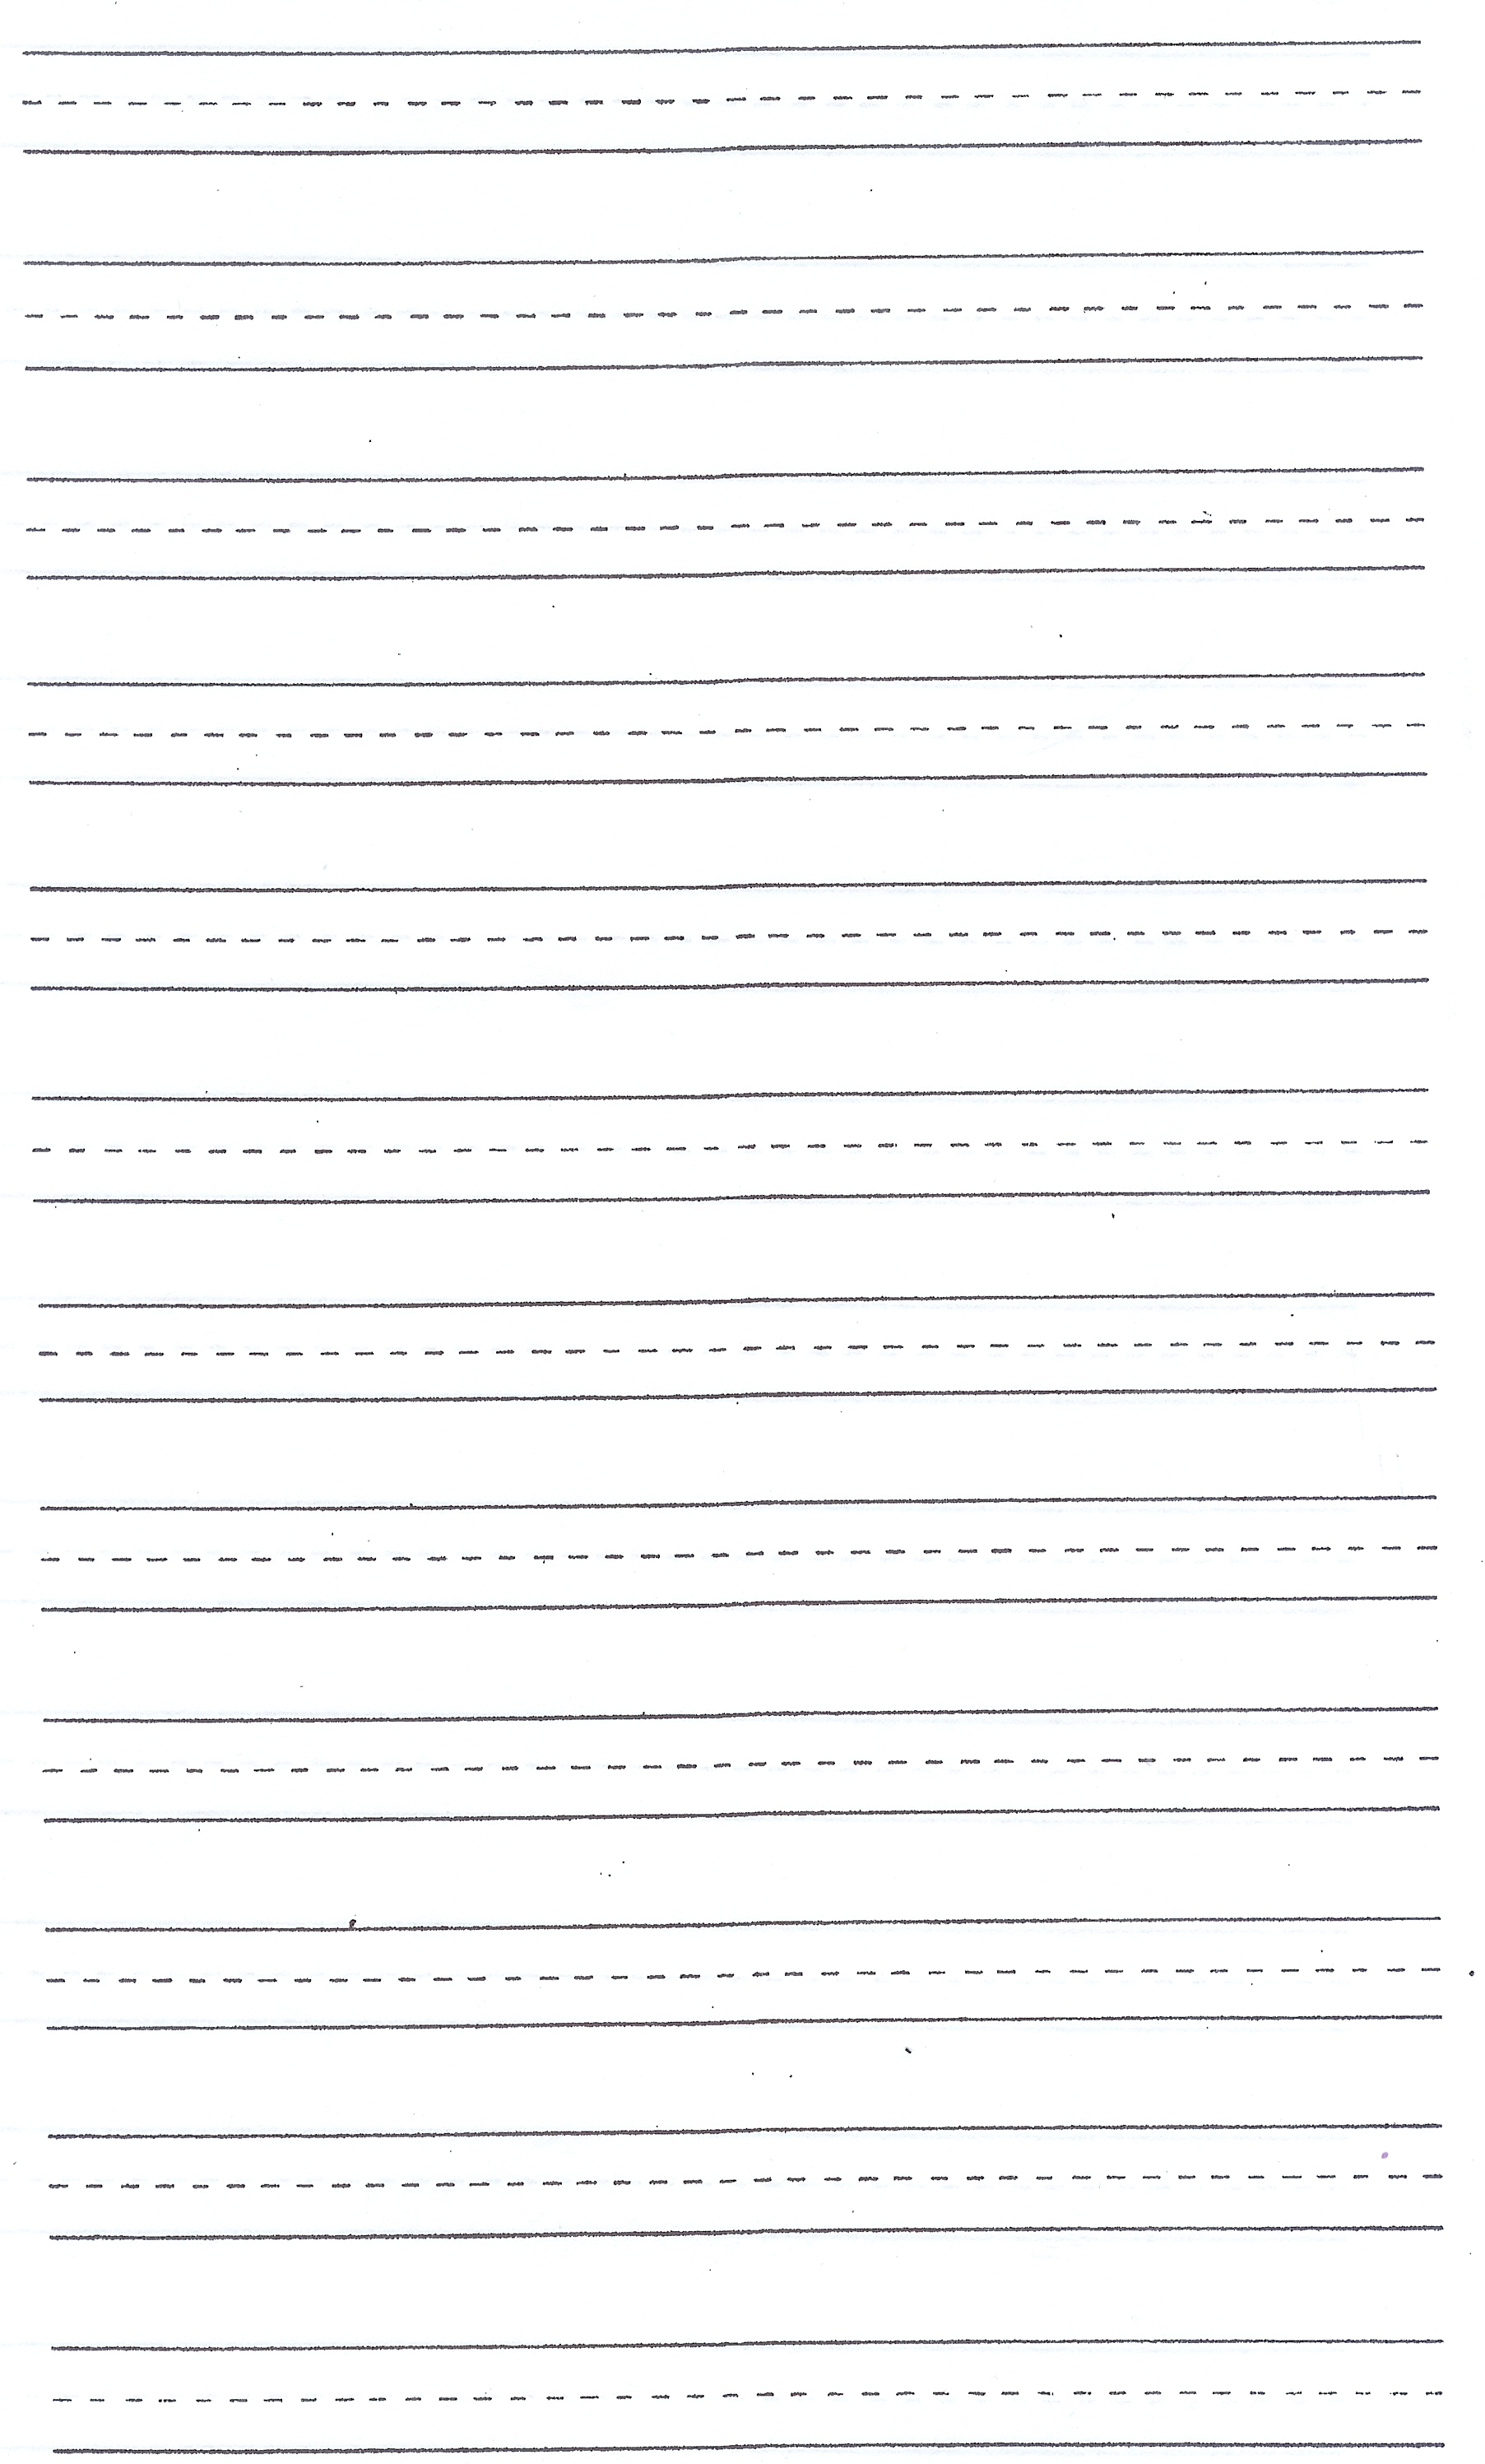 story writing paper for nd grade how to write a good story writing paper for 2nd grade